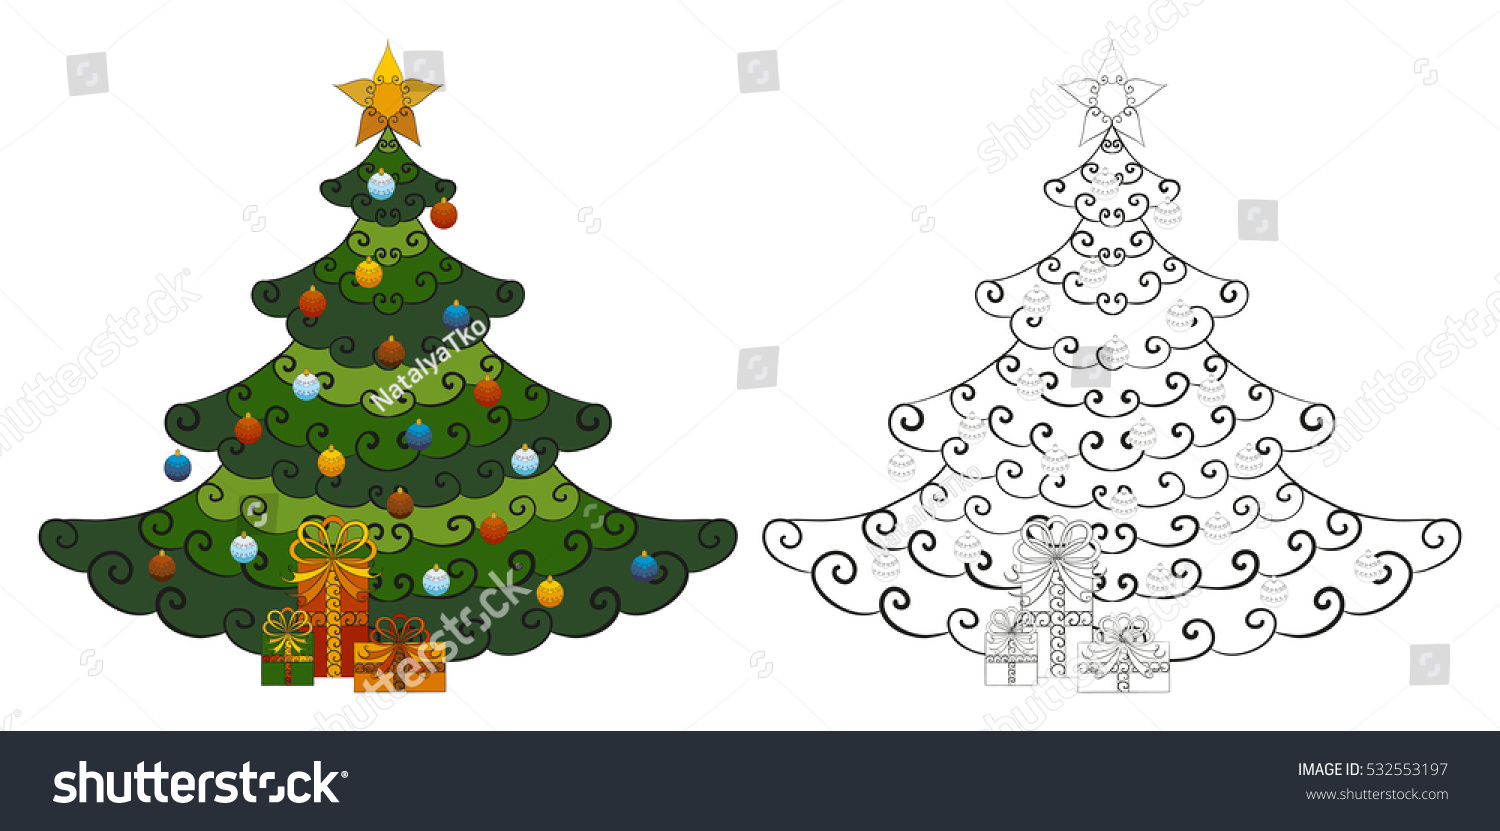 Christmas Tree Decorated Star Balls Gifts Stock Vector (Royalty Free ...